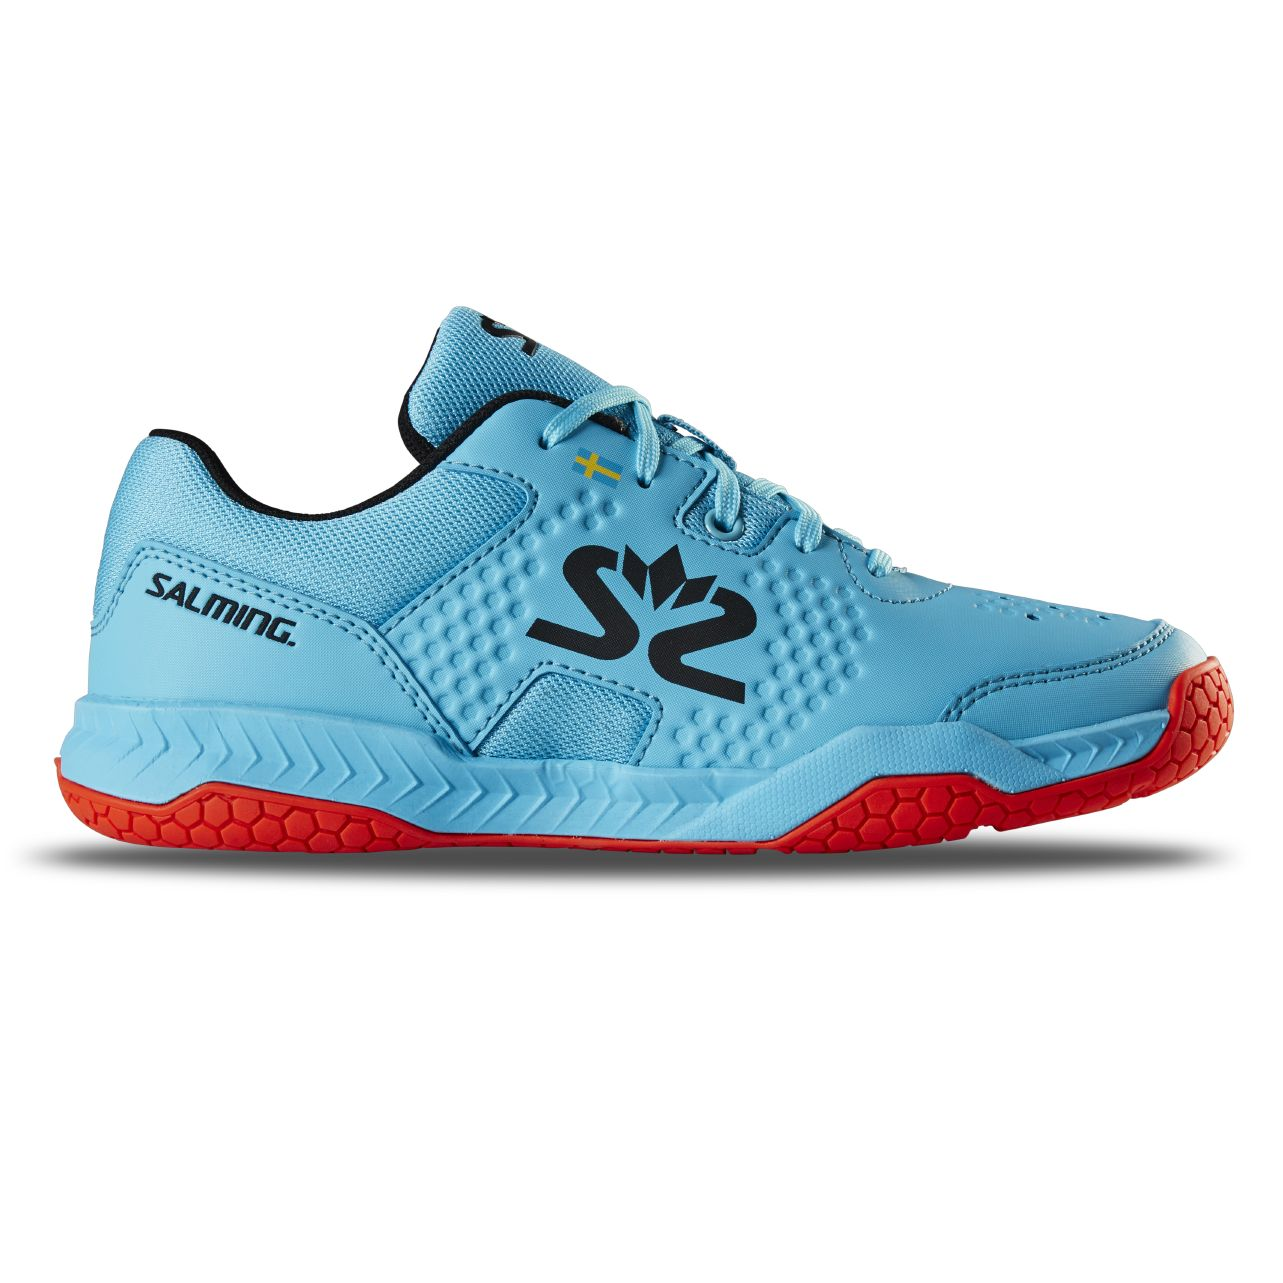 Salming Hawk Court Shoe Junior Blue/Red 6 UK - 40 EUR - 25,5 cm